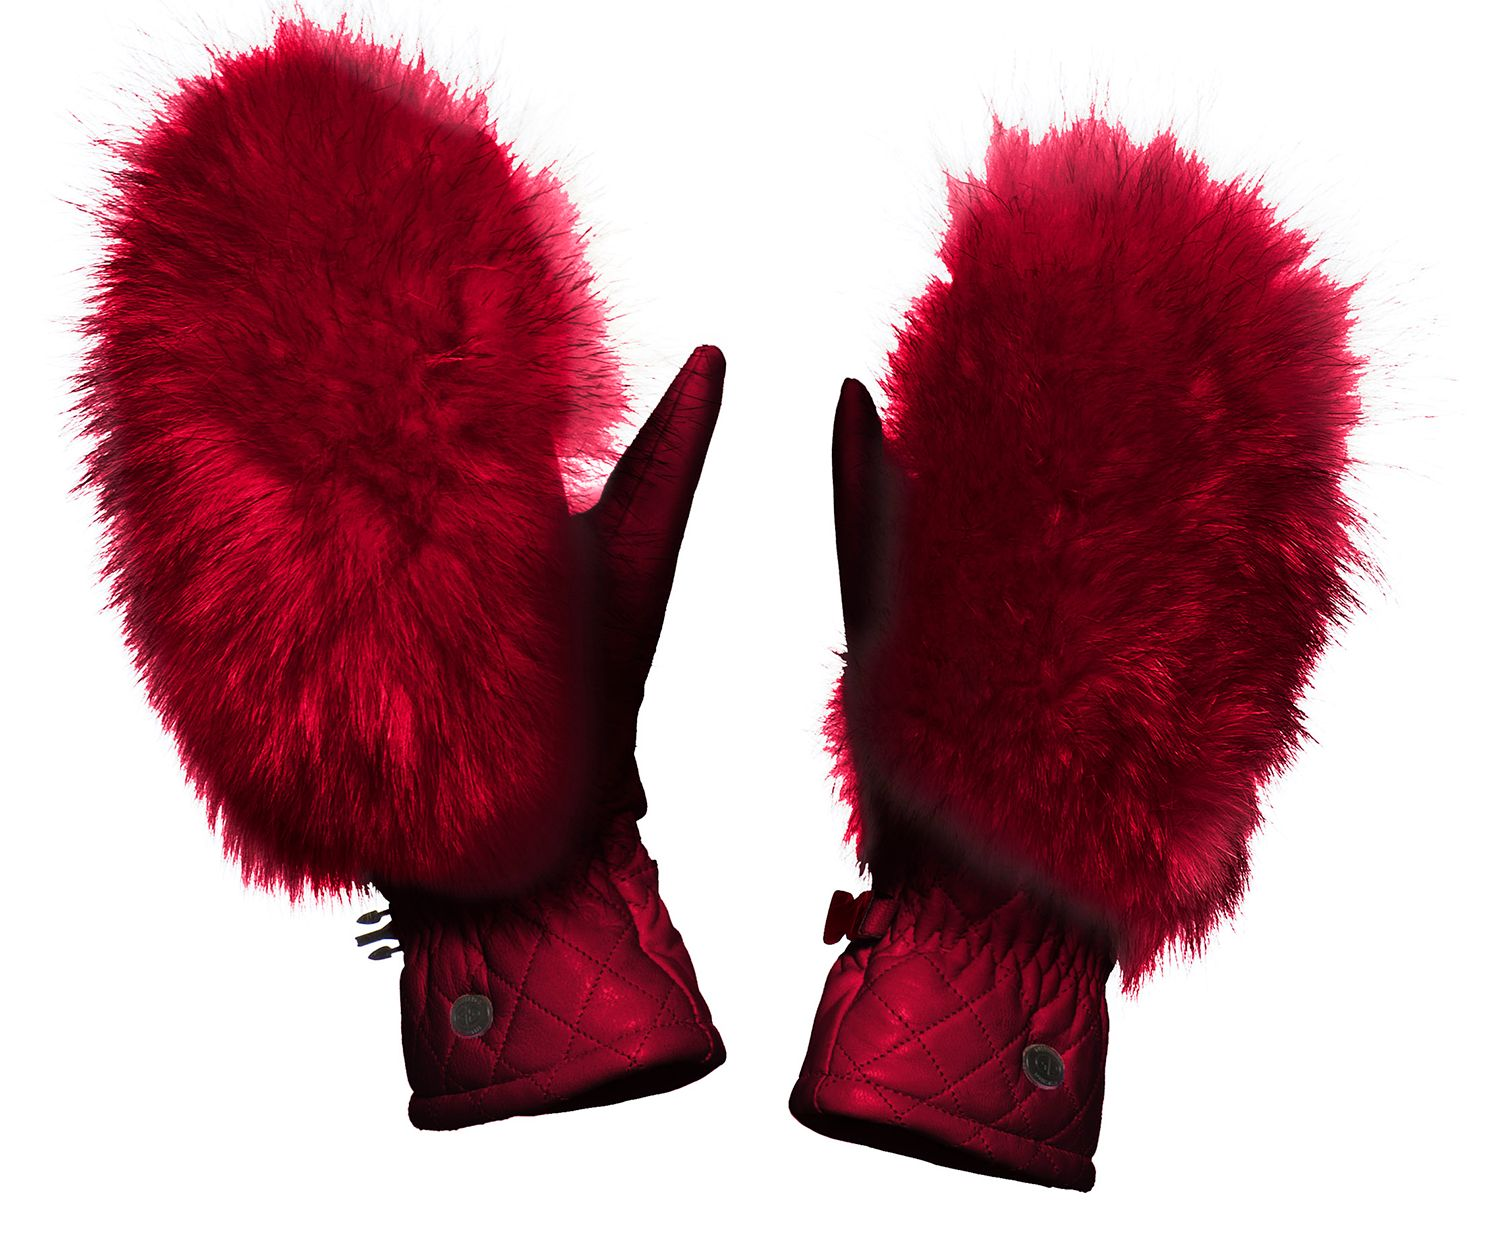 Goldbergh Hando Leather and Fur Mittens